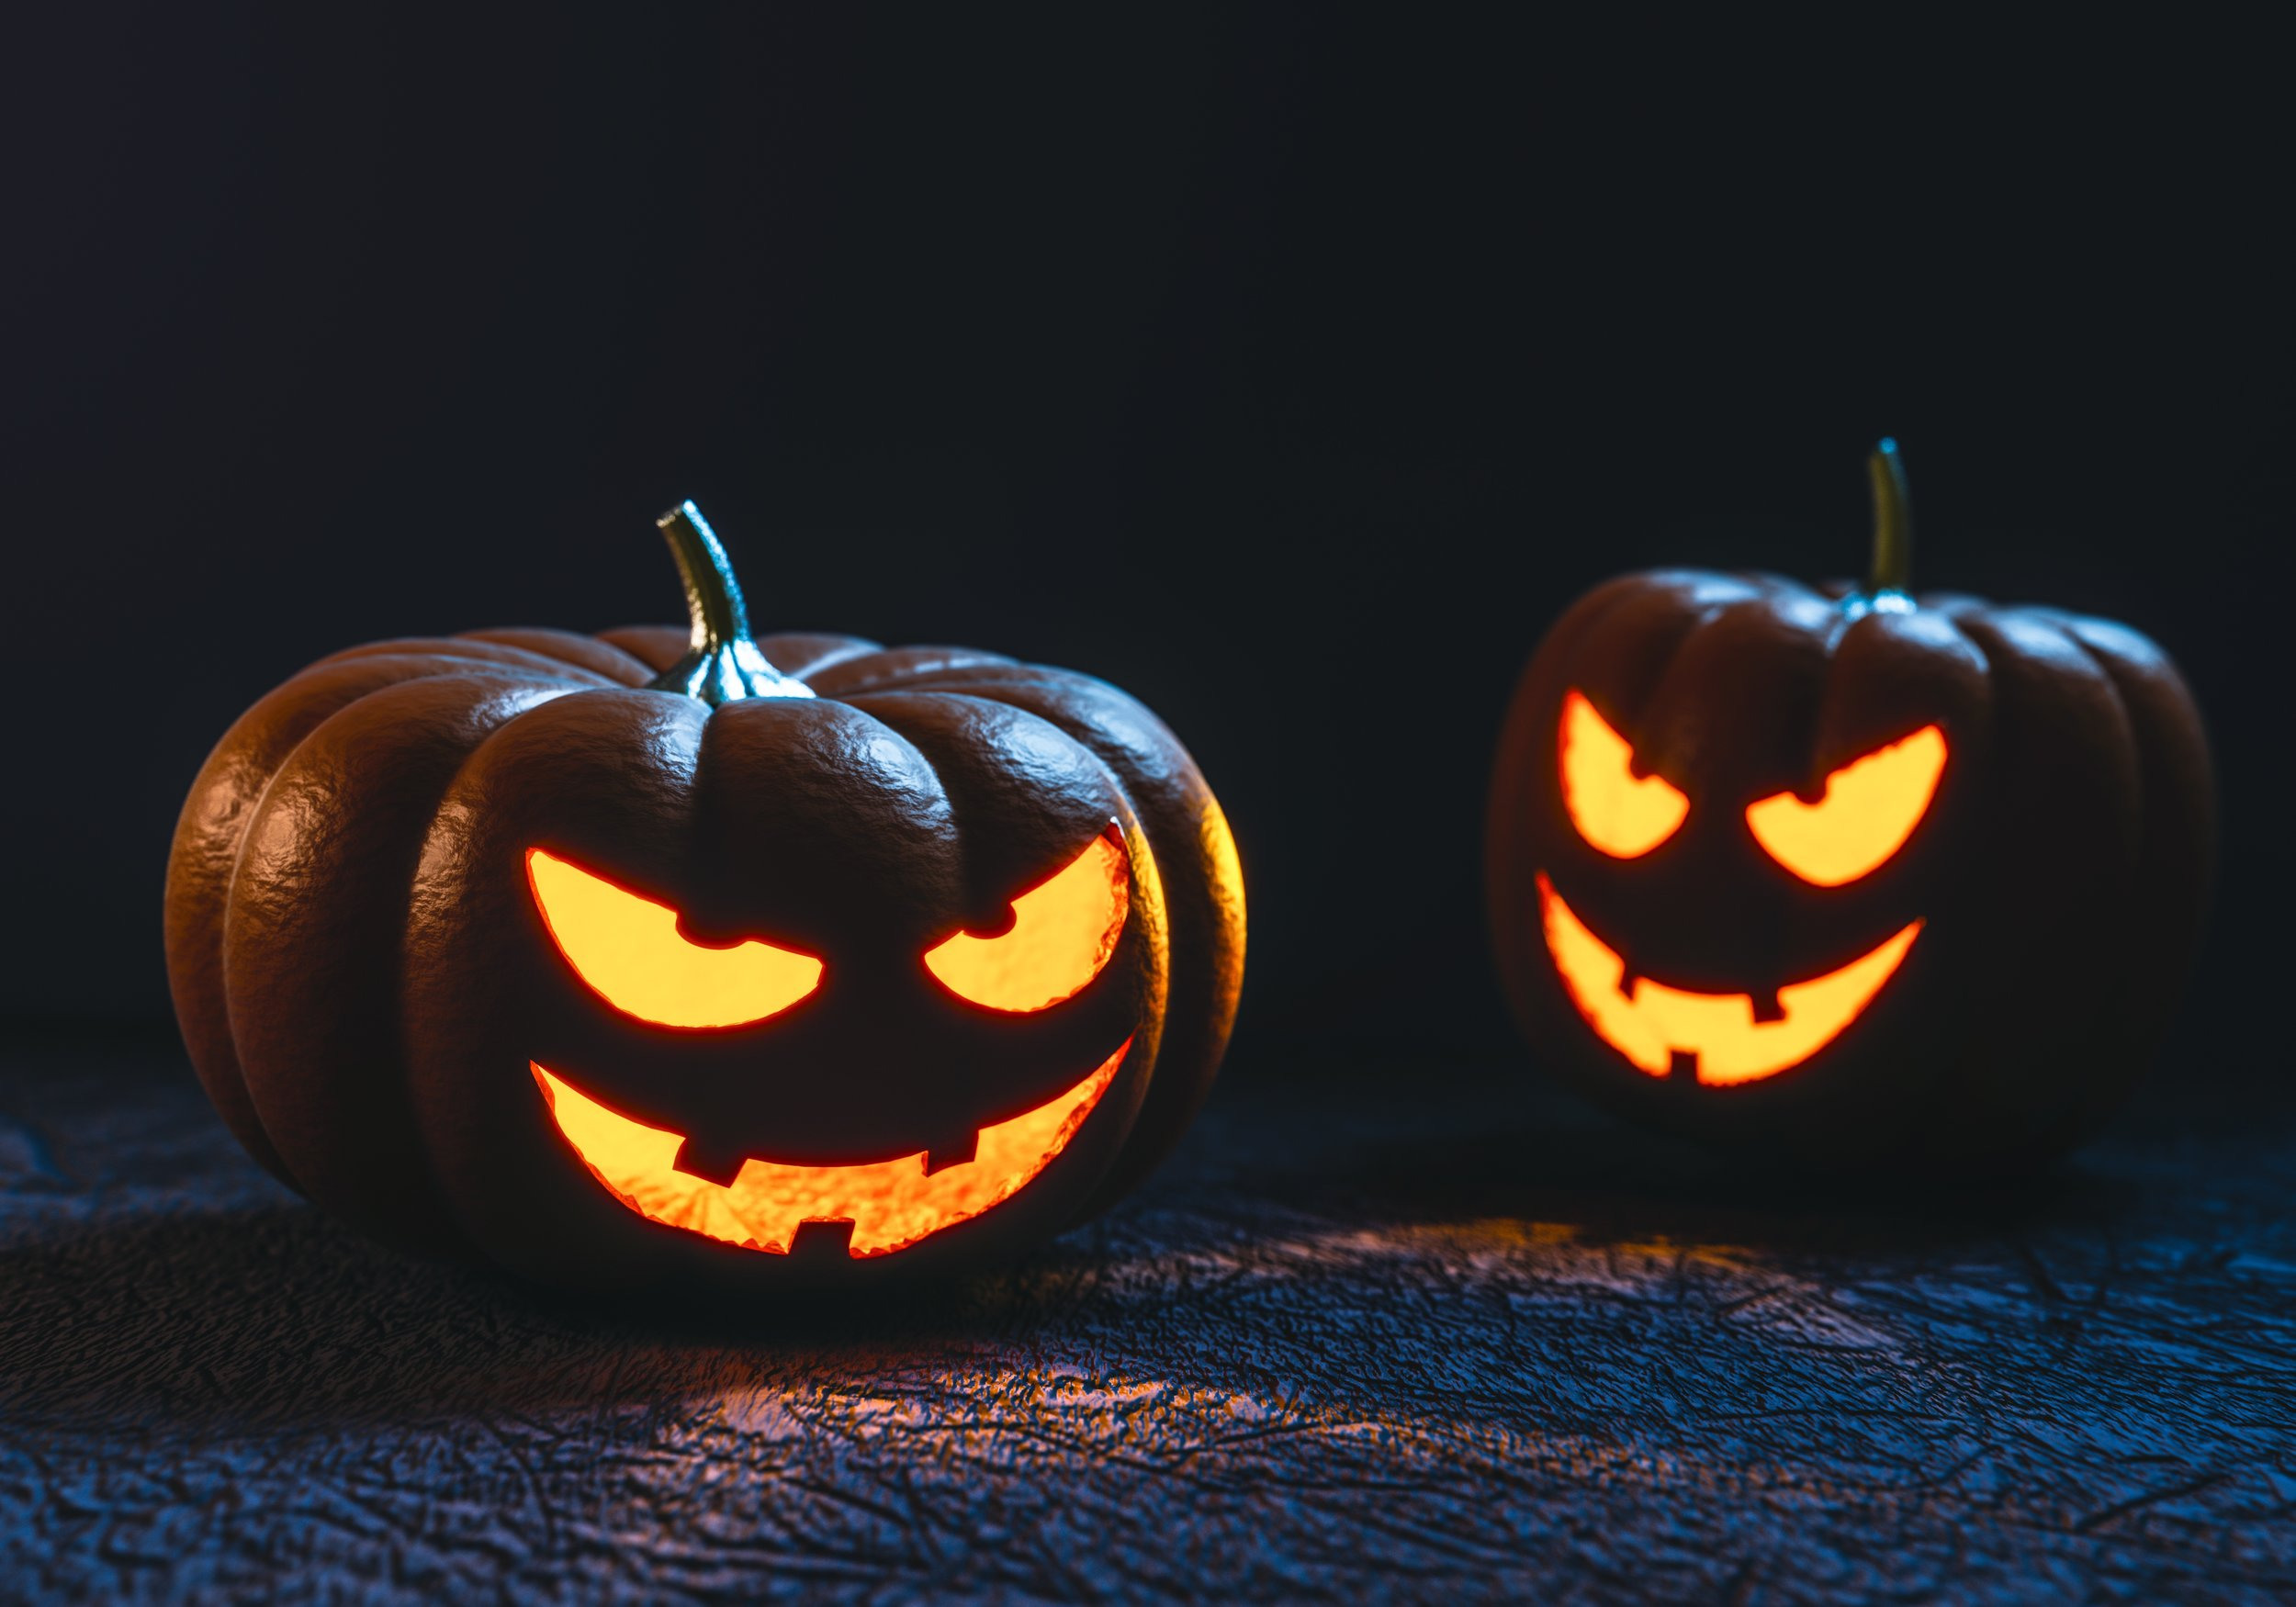 How To Celebrate Halloween (Without Creating Mounds Of Plastic Garbage)